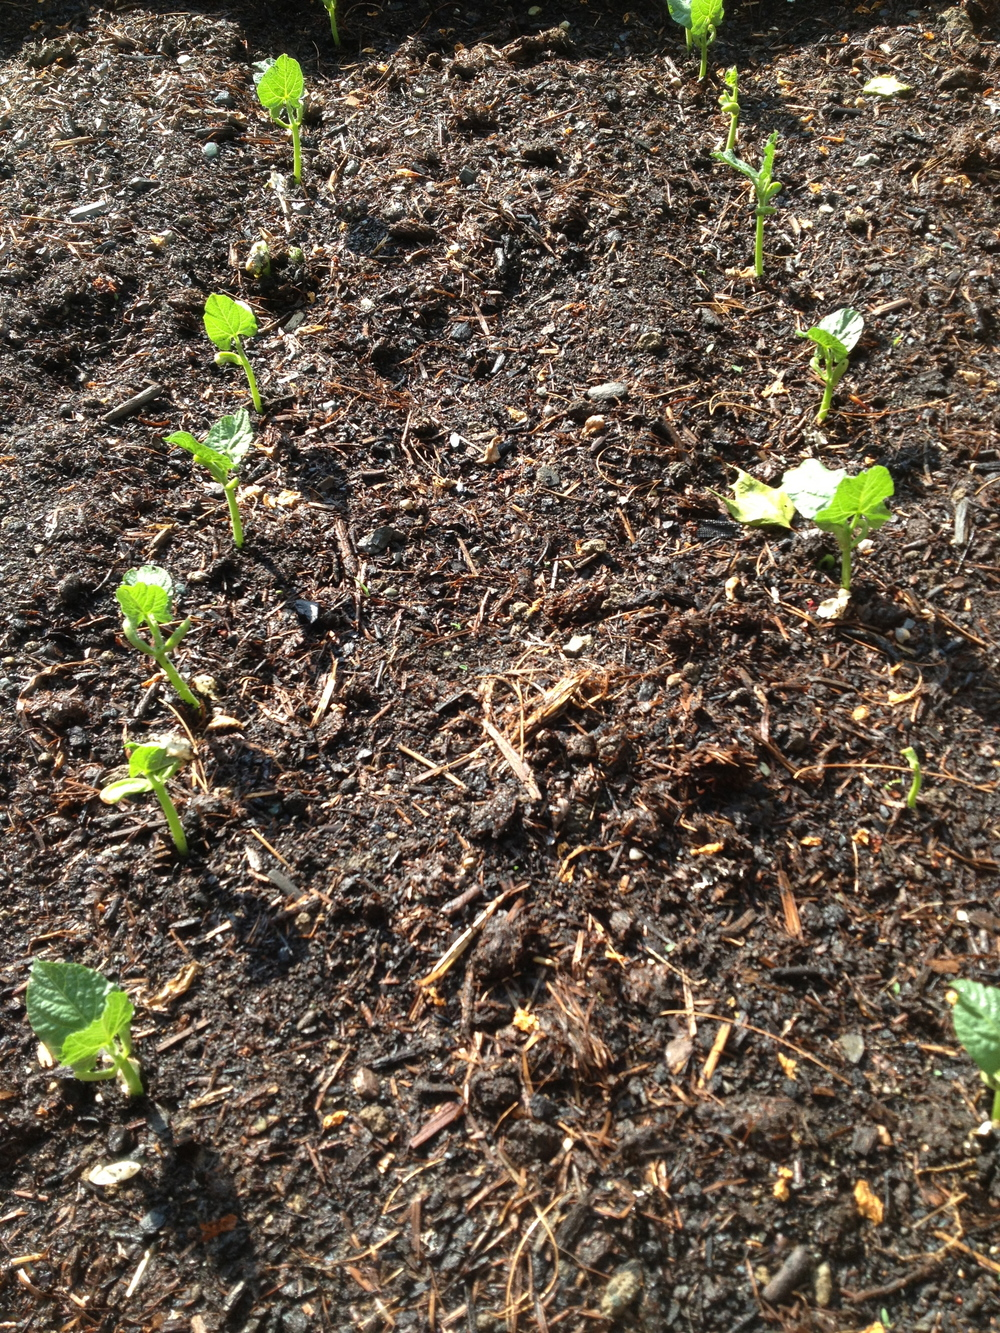 Beans coming up!  They are getting so big now!  I'll show you another picture below.